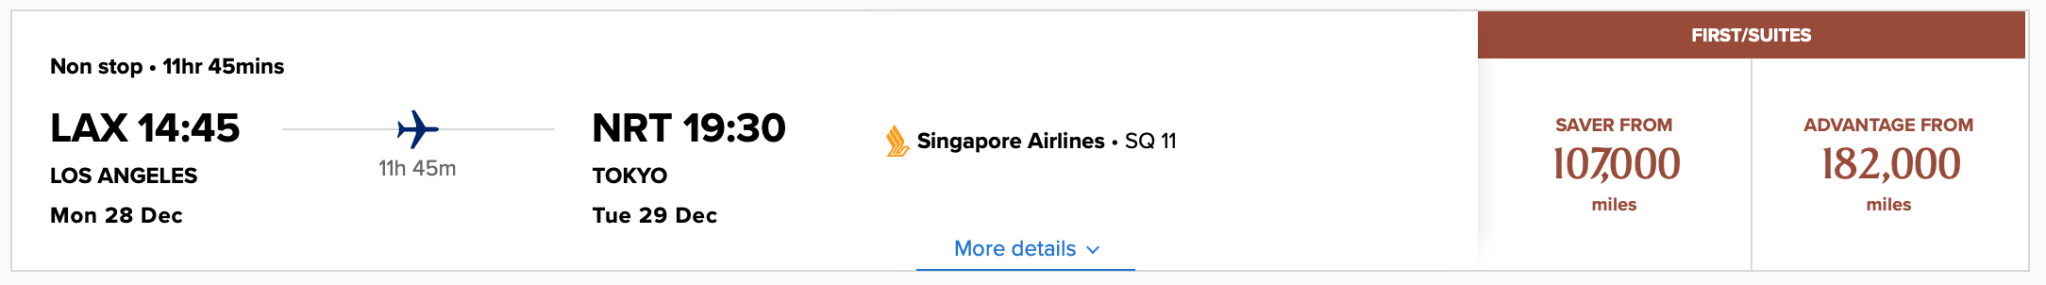 LAX NRT First Class Award Pricing Screen Shot Singapore Airlines